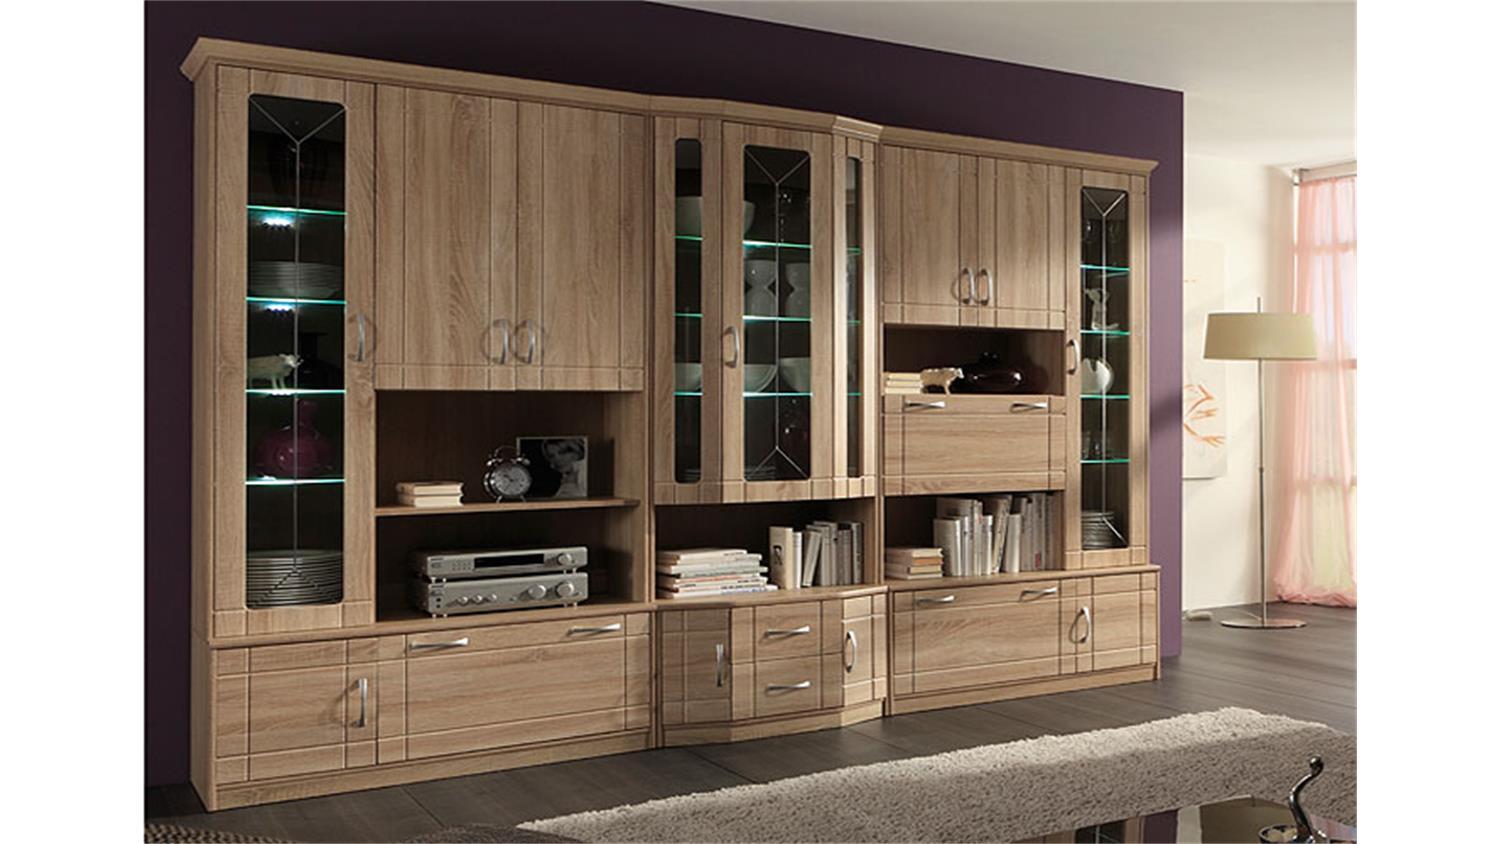 wohnwand village 2 sonoma eiche mdf inkl led. Black Bedroom Furniture Sets. Home Design Ideas